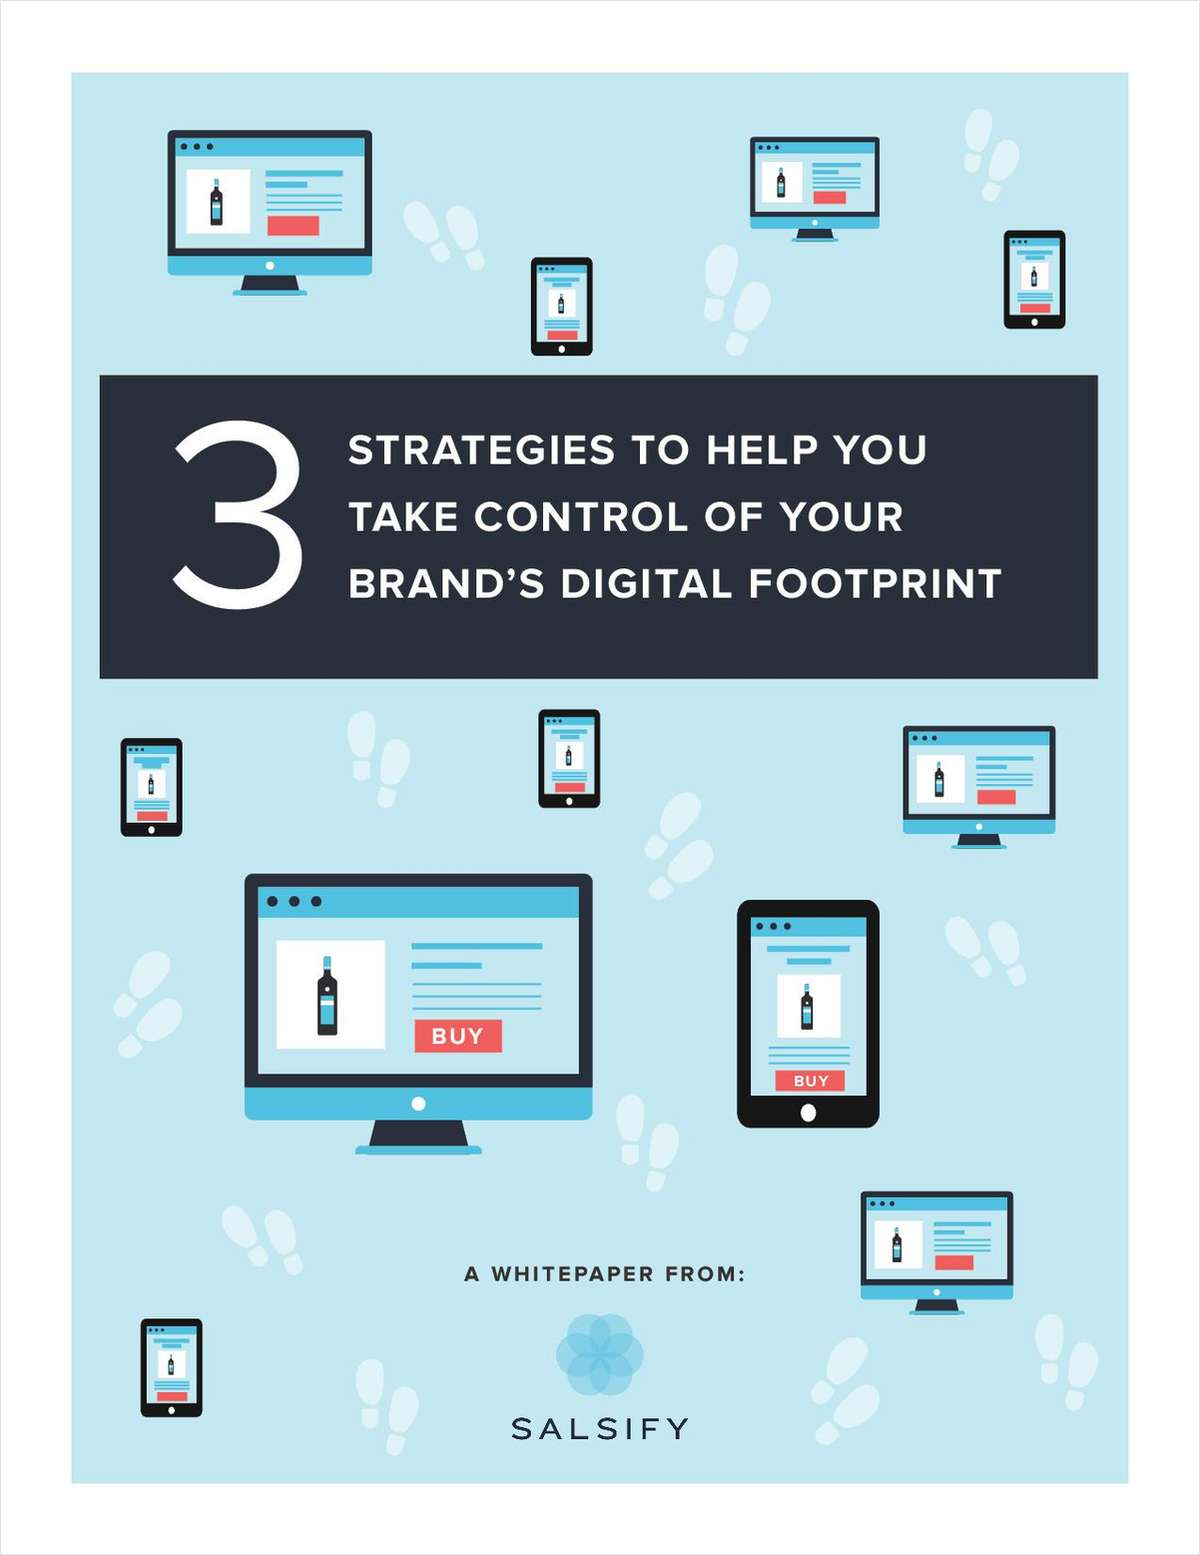 3 Strategies to Help You Take Control of Your Brand's Digital Footprint